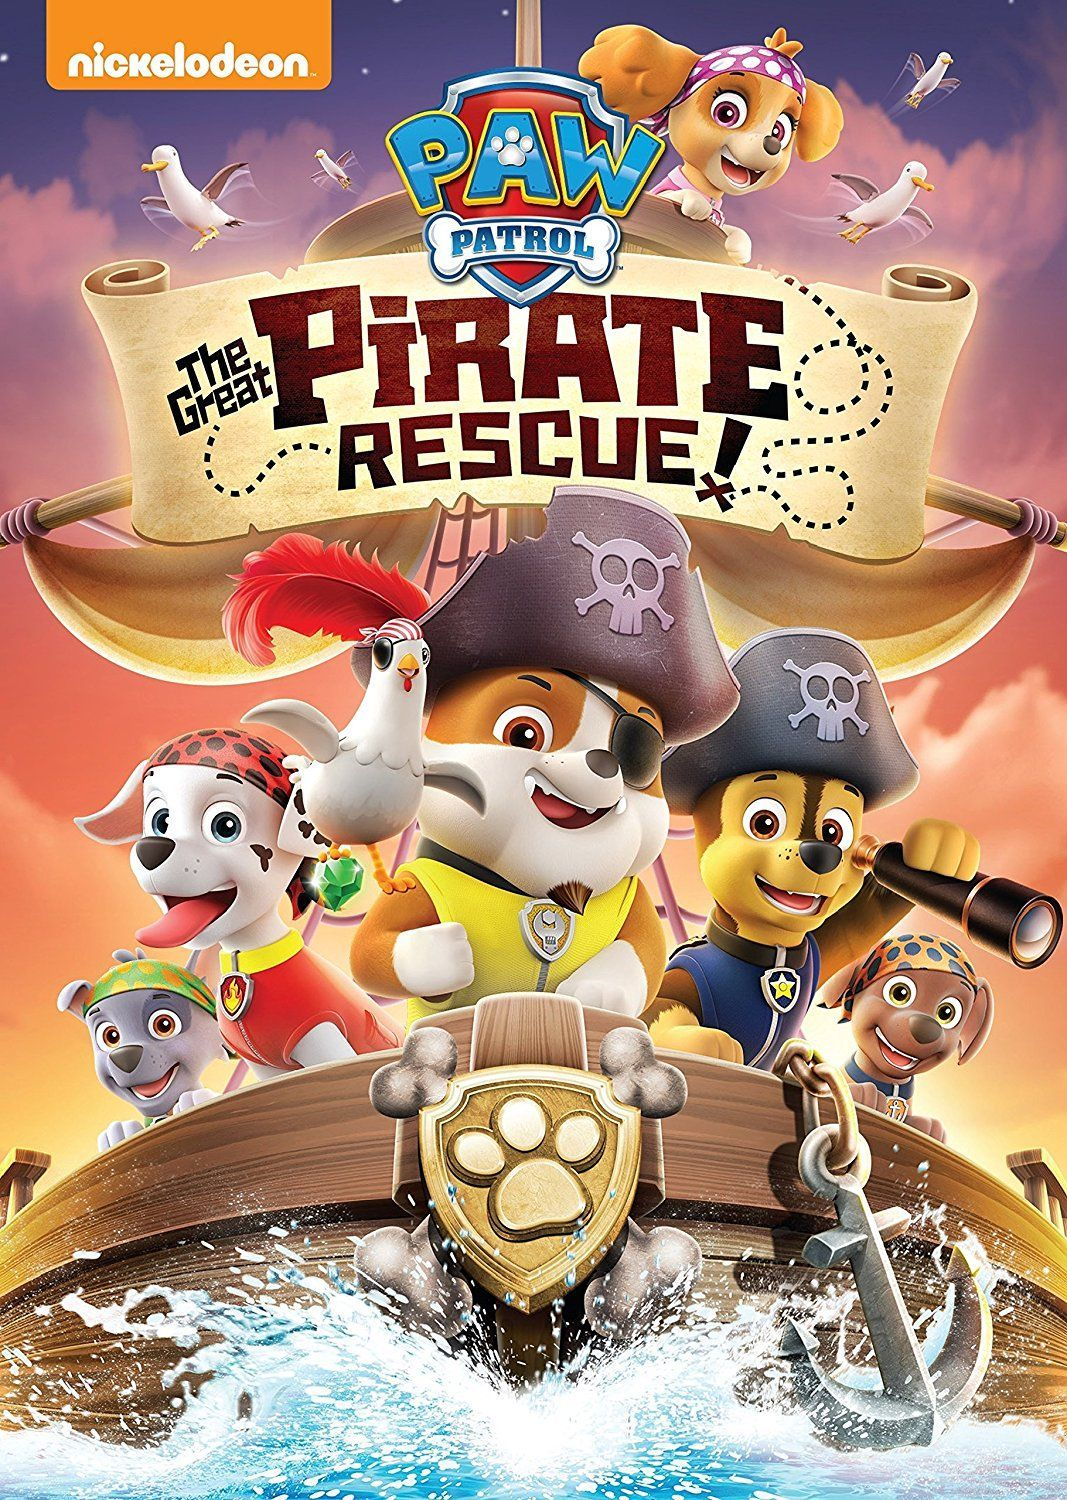 Paw Patrol The Great Pirate Rescue DVD - In Our Spare Time -  Paw Patrol The Great Pirate Rescue DVD #ad  - #DVD #EmjayAnthony #FinnWolfhard #GageMunroe #great #JackDylanGrazer #NoahJupe #patrol #Paw #pirate #rescue #rickandmorty #sofiavergara #spare #themaskedsinger #TheRealHousewives #Time